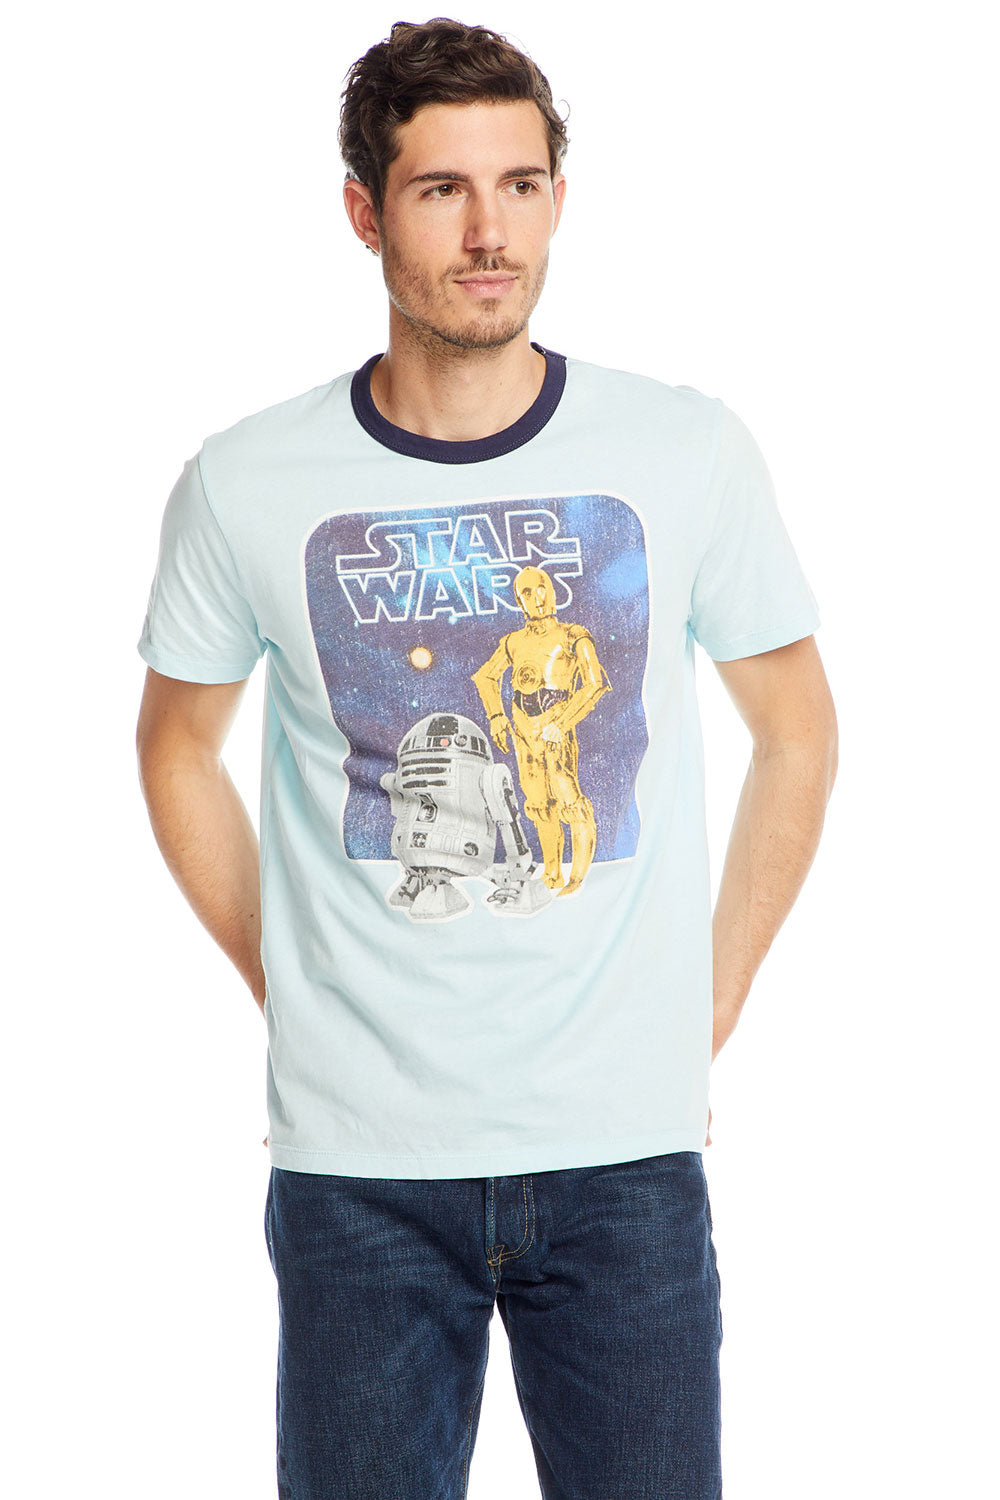 Star Wars - R2-D2 & C3PO, MENS, chaserbrand.com,chaser clothing,chaser apparel,chaser los angeles